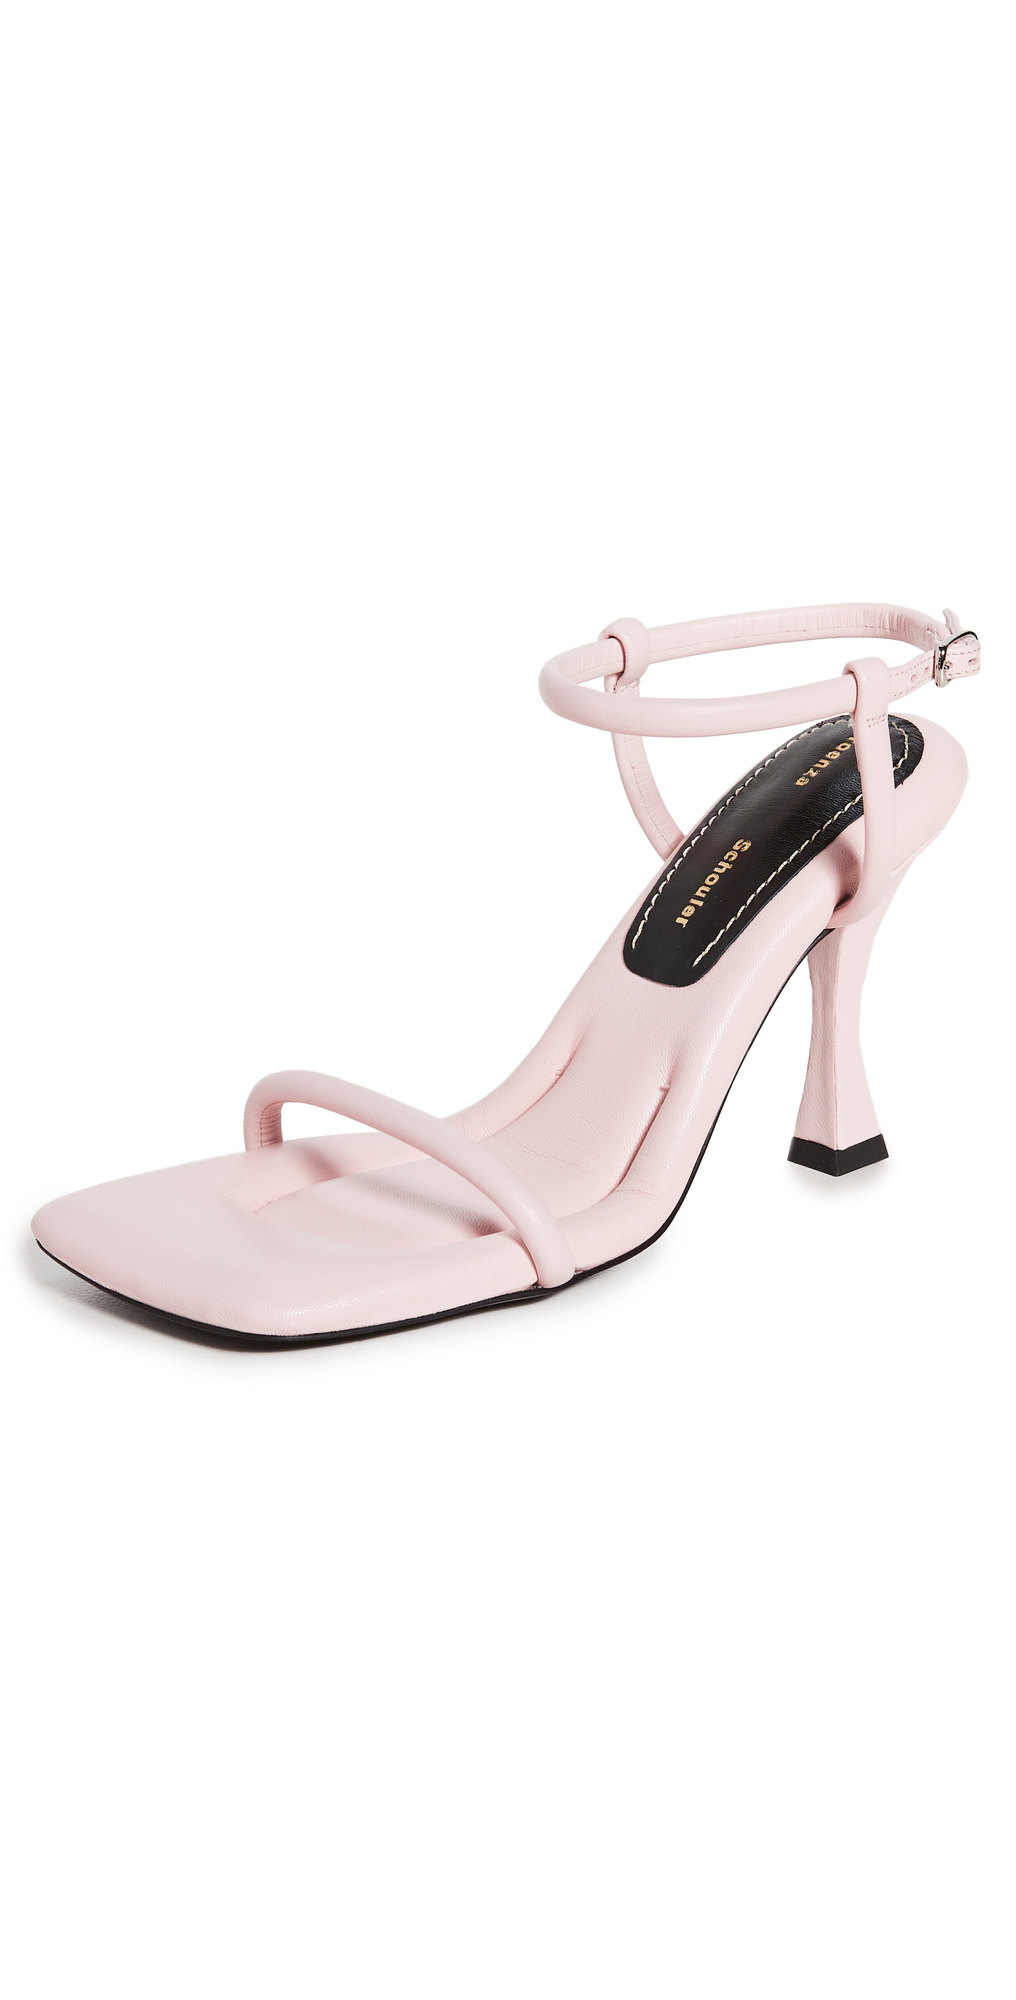 Proenza Schouler 90MM SQUARE PADDED SANDALS